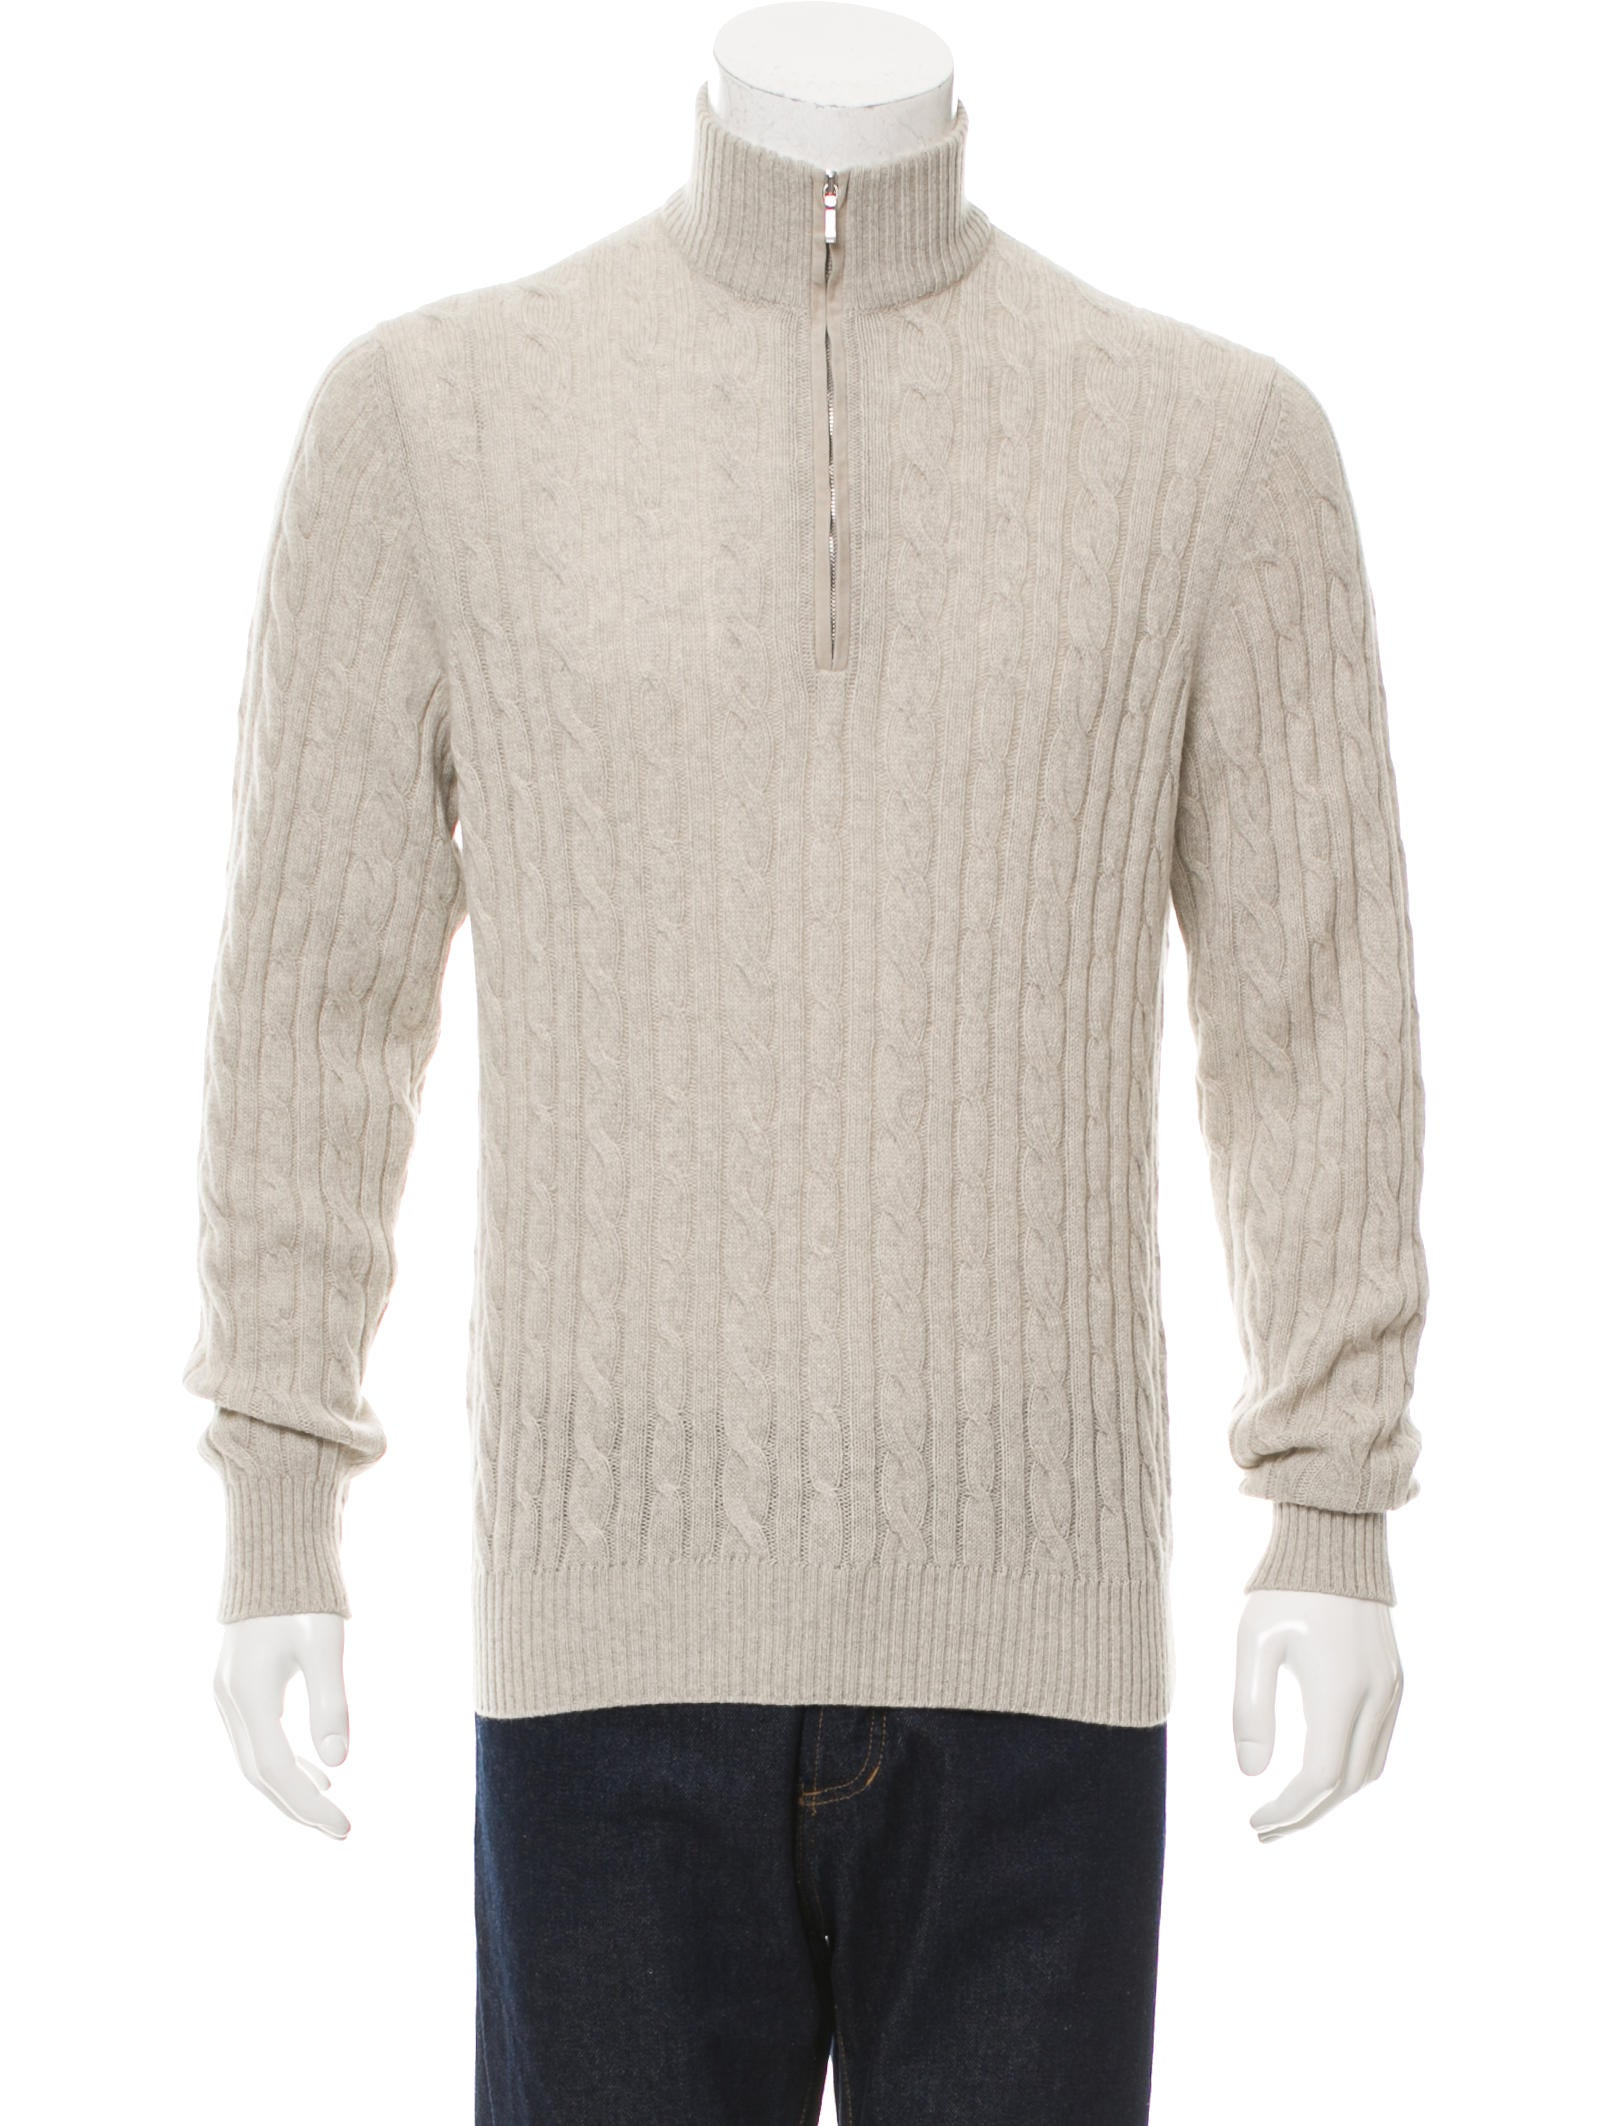 5344822f6 Loro Piana Suede-Trimmed Baby Cashmere Sweater - Clothing - LOR34315 ...